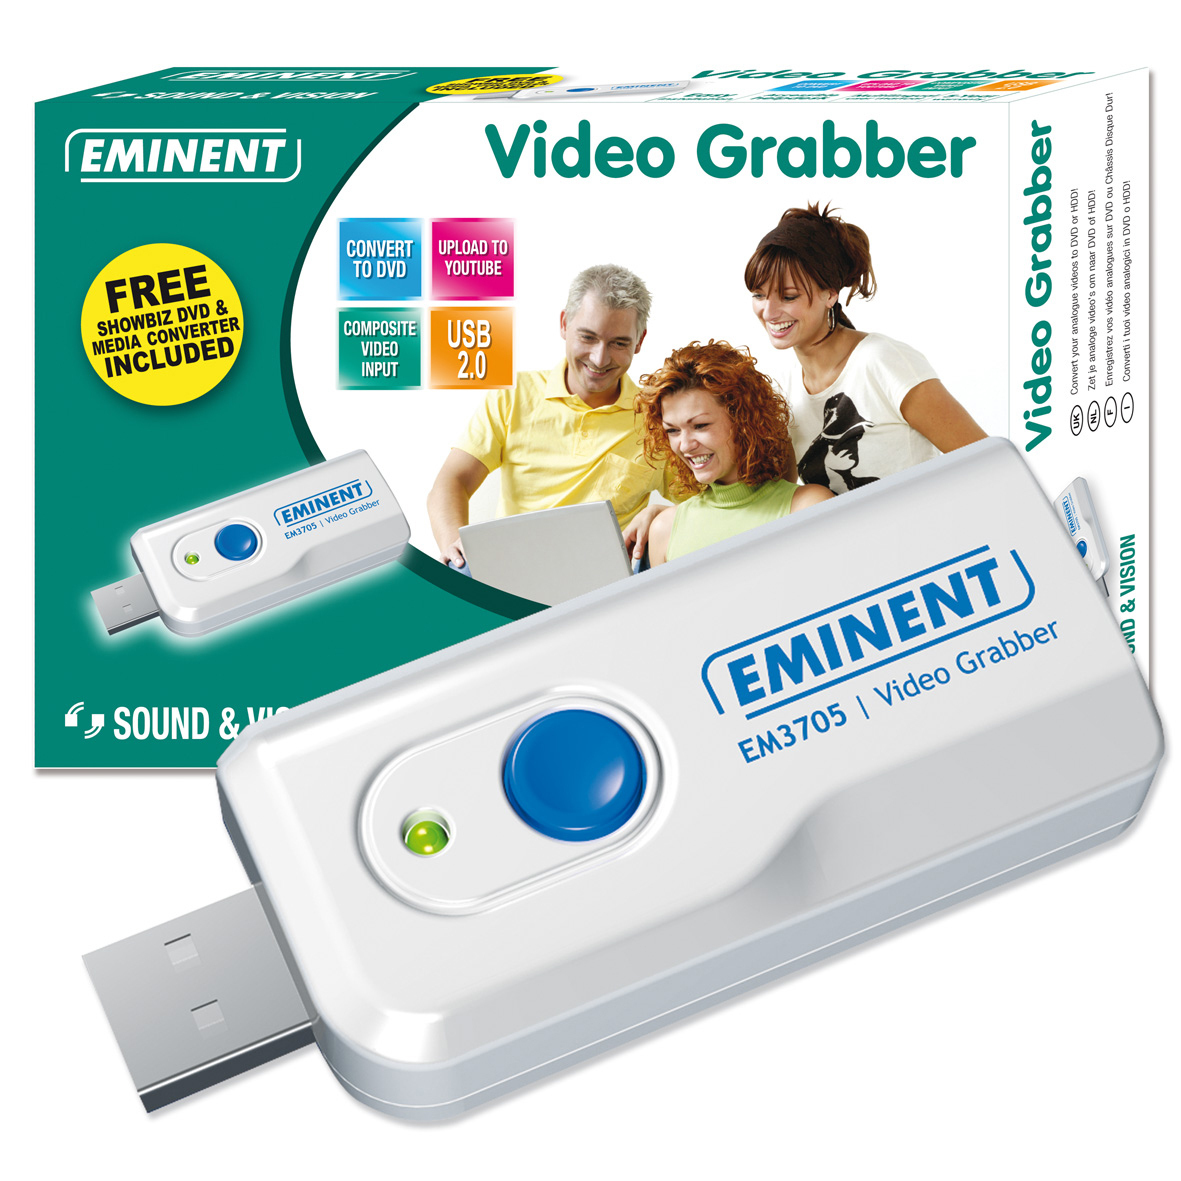 VIDEO GRABBER EWENT USB 2.0